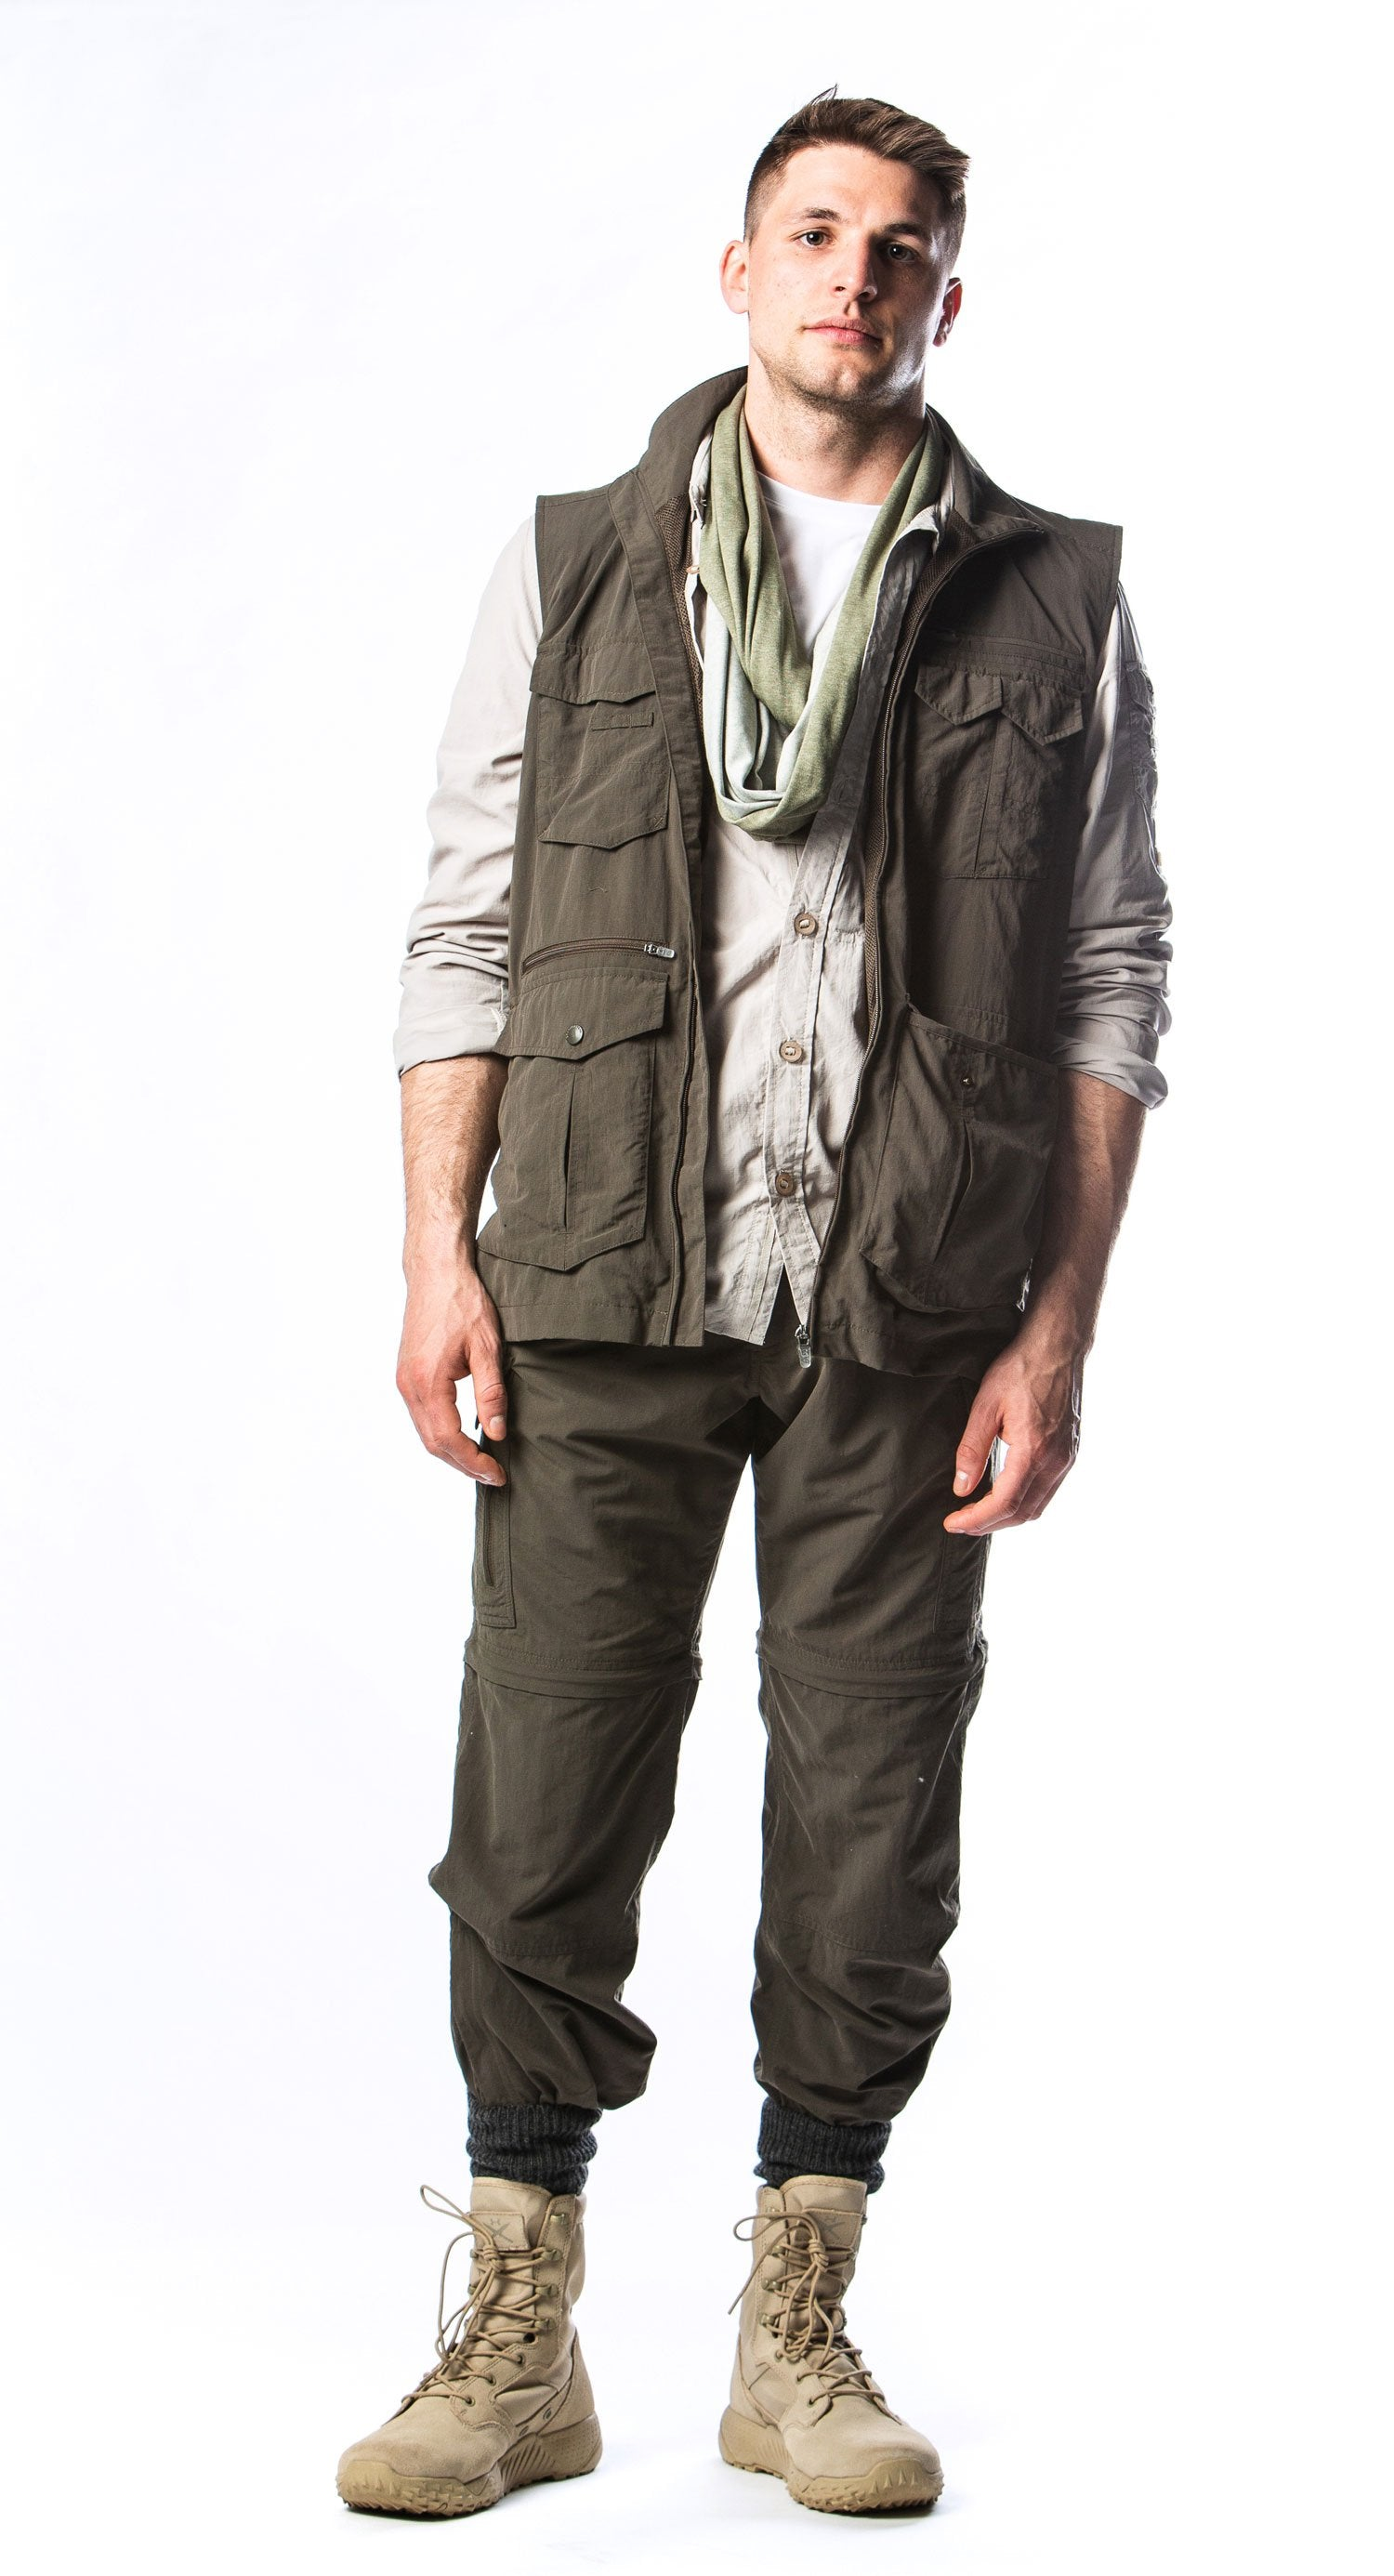 Gap year travel vest with multi pockets